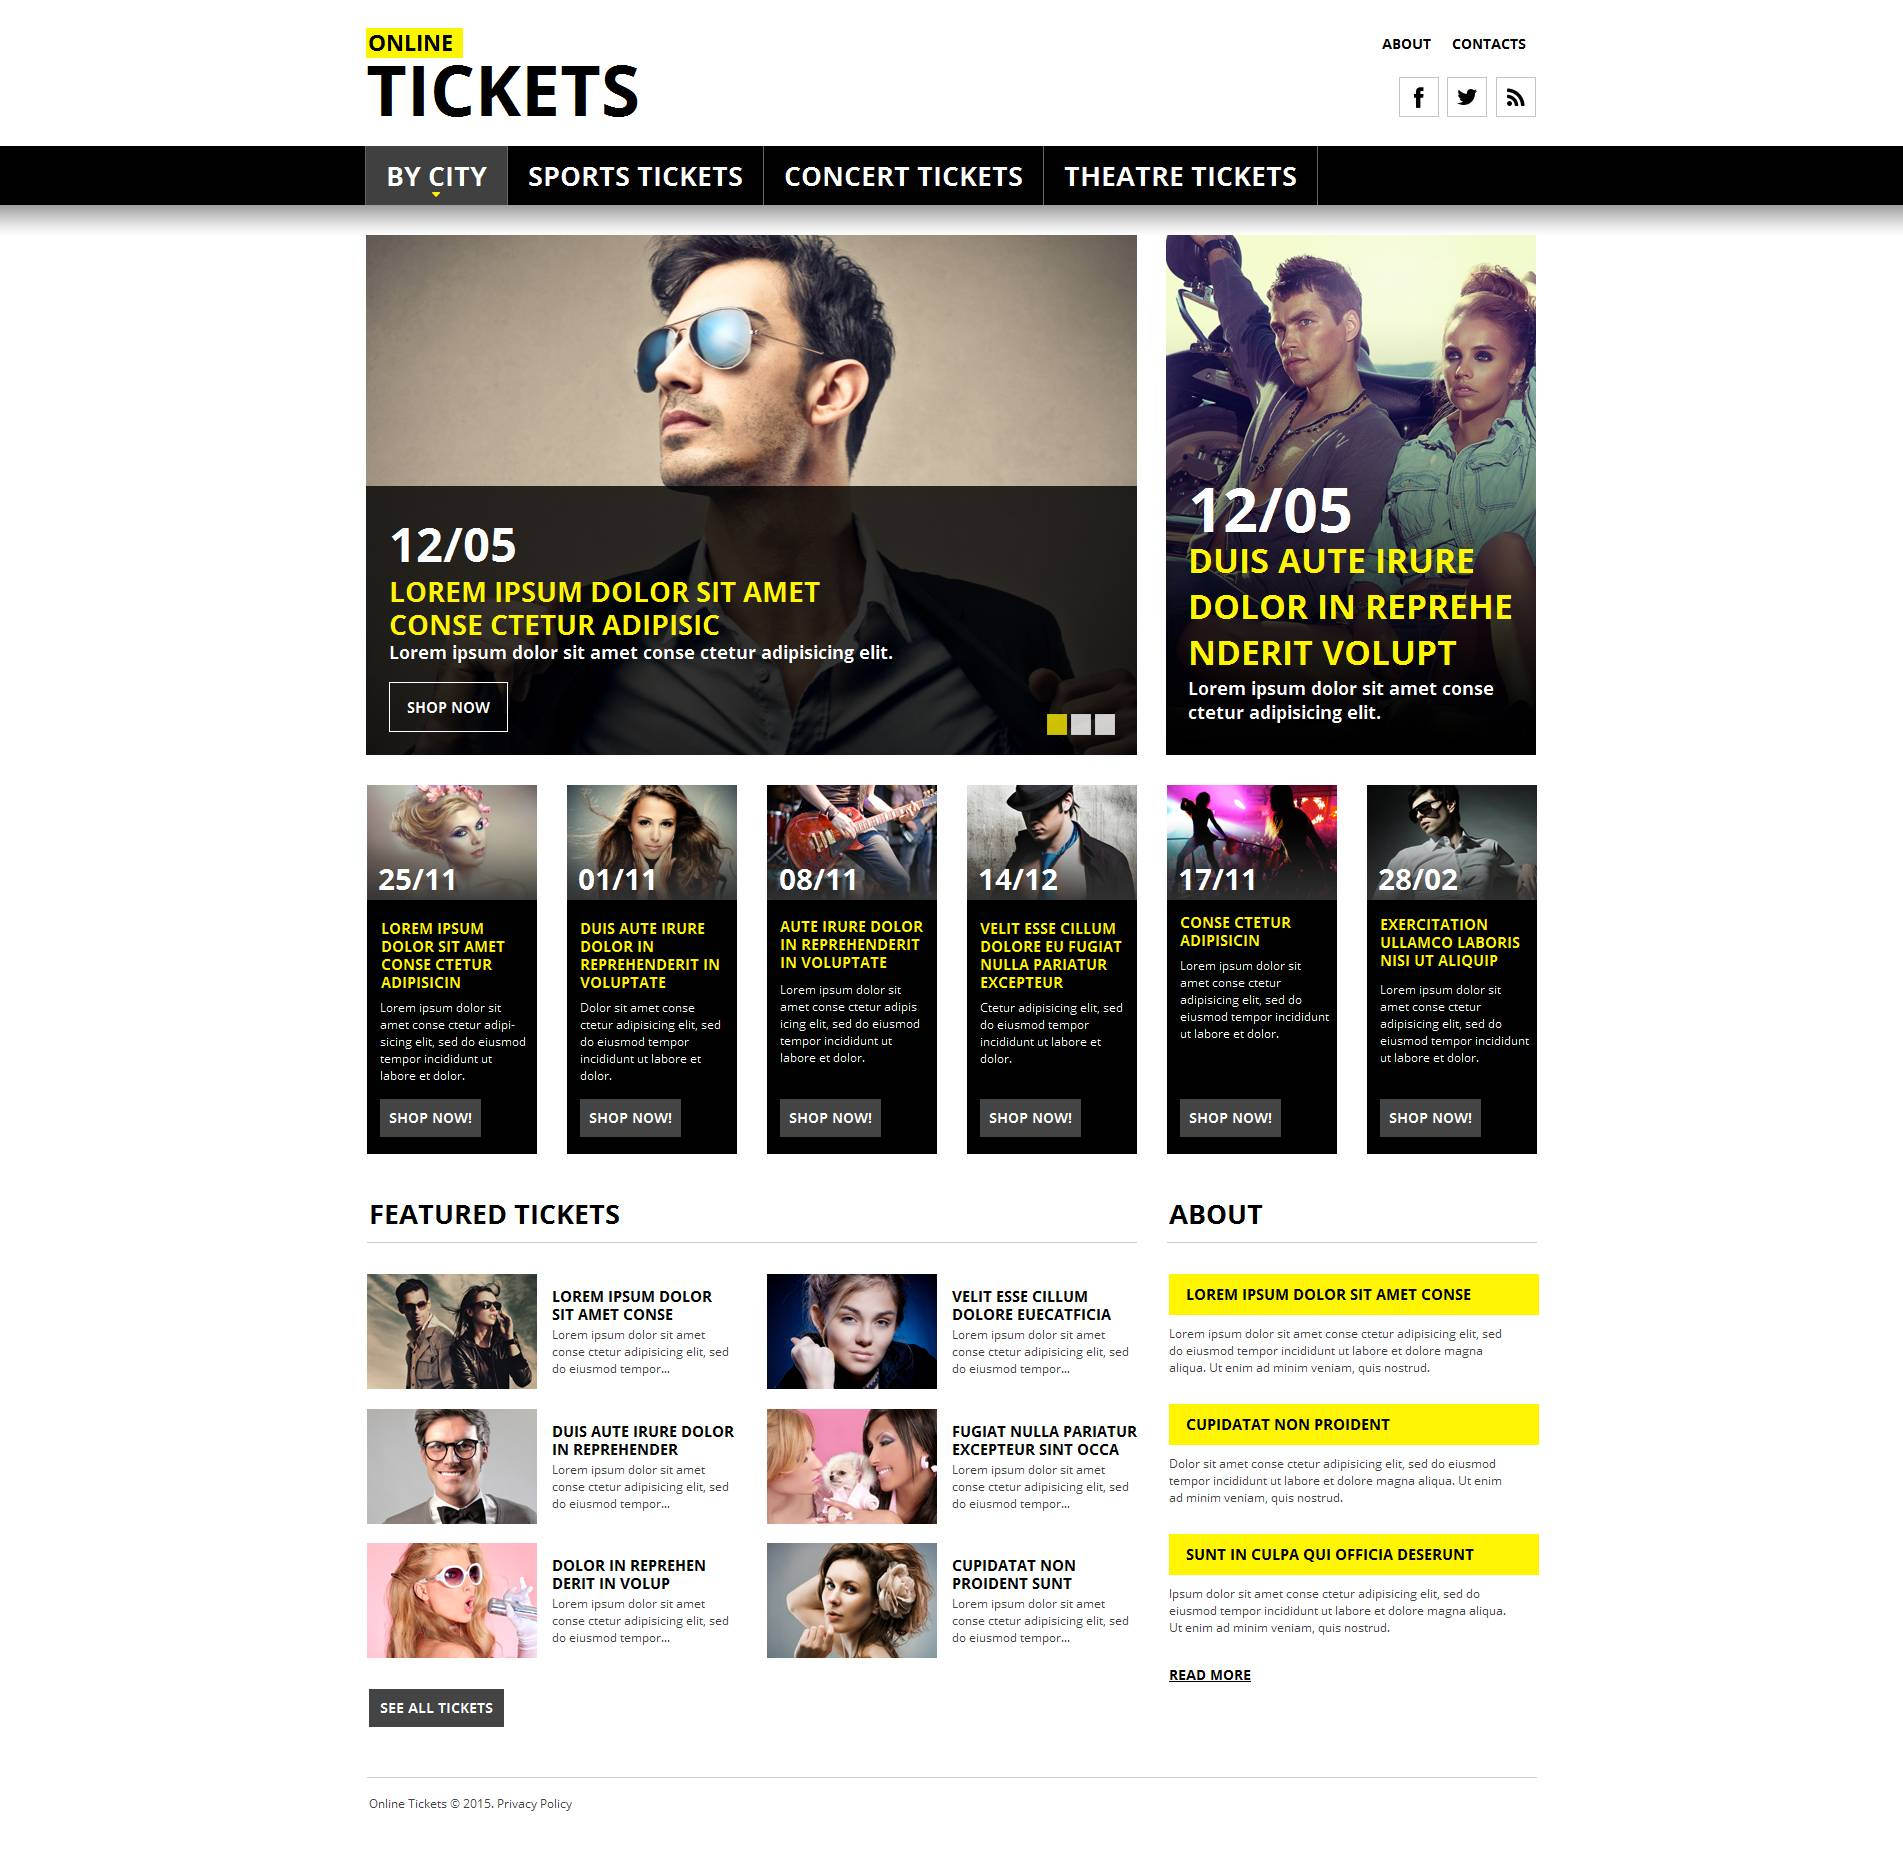 The Online Tickets Portal Moto CMS HTML Design 53634, one of the best Moto CMS HTML templates of its kind (entertainment), also known as online tickets portal Moto CMS HTML template, music Moto CMS HTML template, concerts Moto CMS HTML template, sports Moto CMS HTML template, art Moto CMS HTML template, theatre Moto CMS HTML template, cinema Moto CMS HTML template, movies Moto CMS HTML template, TV family Moto CMS HTML template, sale Moto CMS HTML template, performance Moto CMS HTML template, categories Moto CMS HTML template, events Moto CMS HTML template, reservation Moto CMS HTML template, exchange Moto CMS HTML template, date Moto CMS HTML template, cancellation Moto CMS HTML template, interest Moto CMS HTML template, order Moto CMS HTML template, discount Moto CMS HTML template, highlights Moto CMS HTML template, services Moto CMS HTML template, searching and related with online tickets portal, music, concerts, sports, art, theatre, cinema, movies, TV family, sale, performance, categories, events, reservation, exchange, date, cancellation, interest, order, discount, highlights, services, searching, etc.